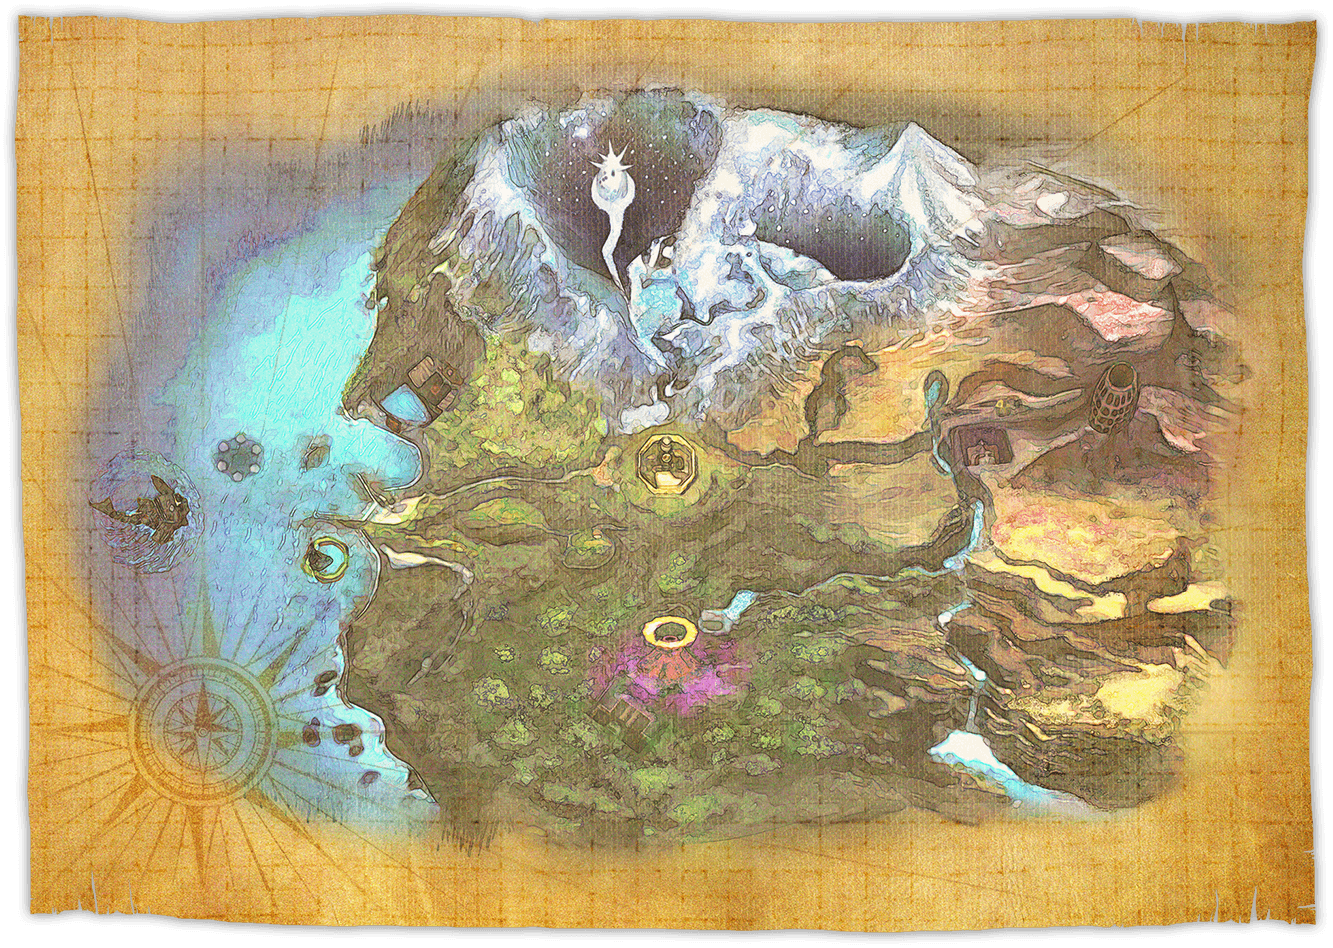 http://zeldawiki.org/images/f/f8/MM3D_Termina_Map_Artwork.png